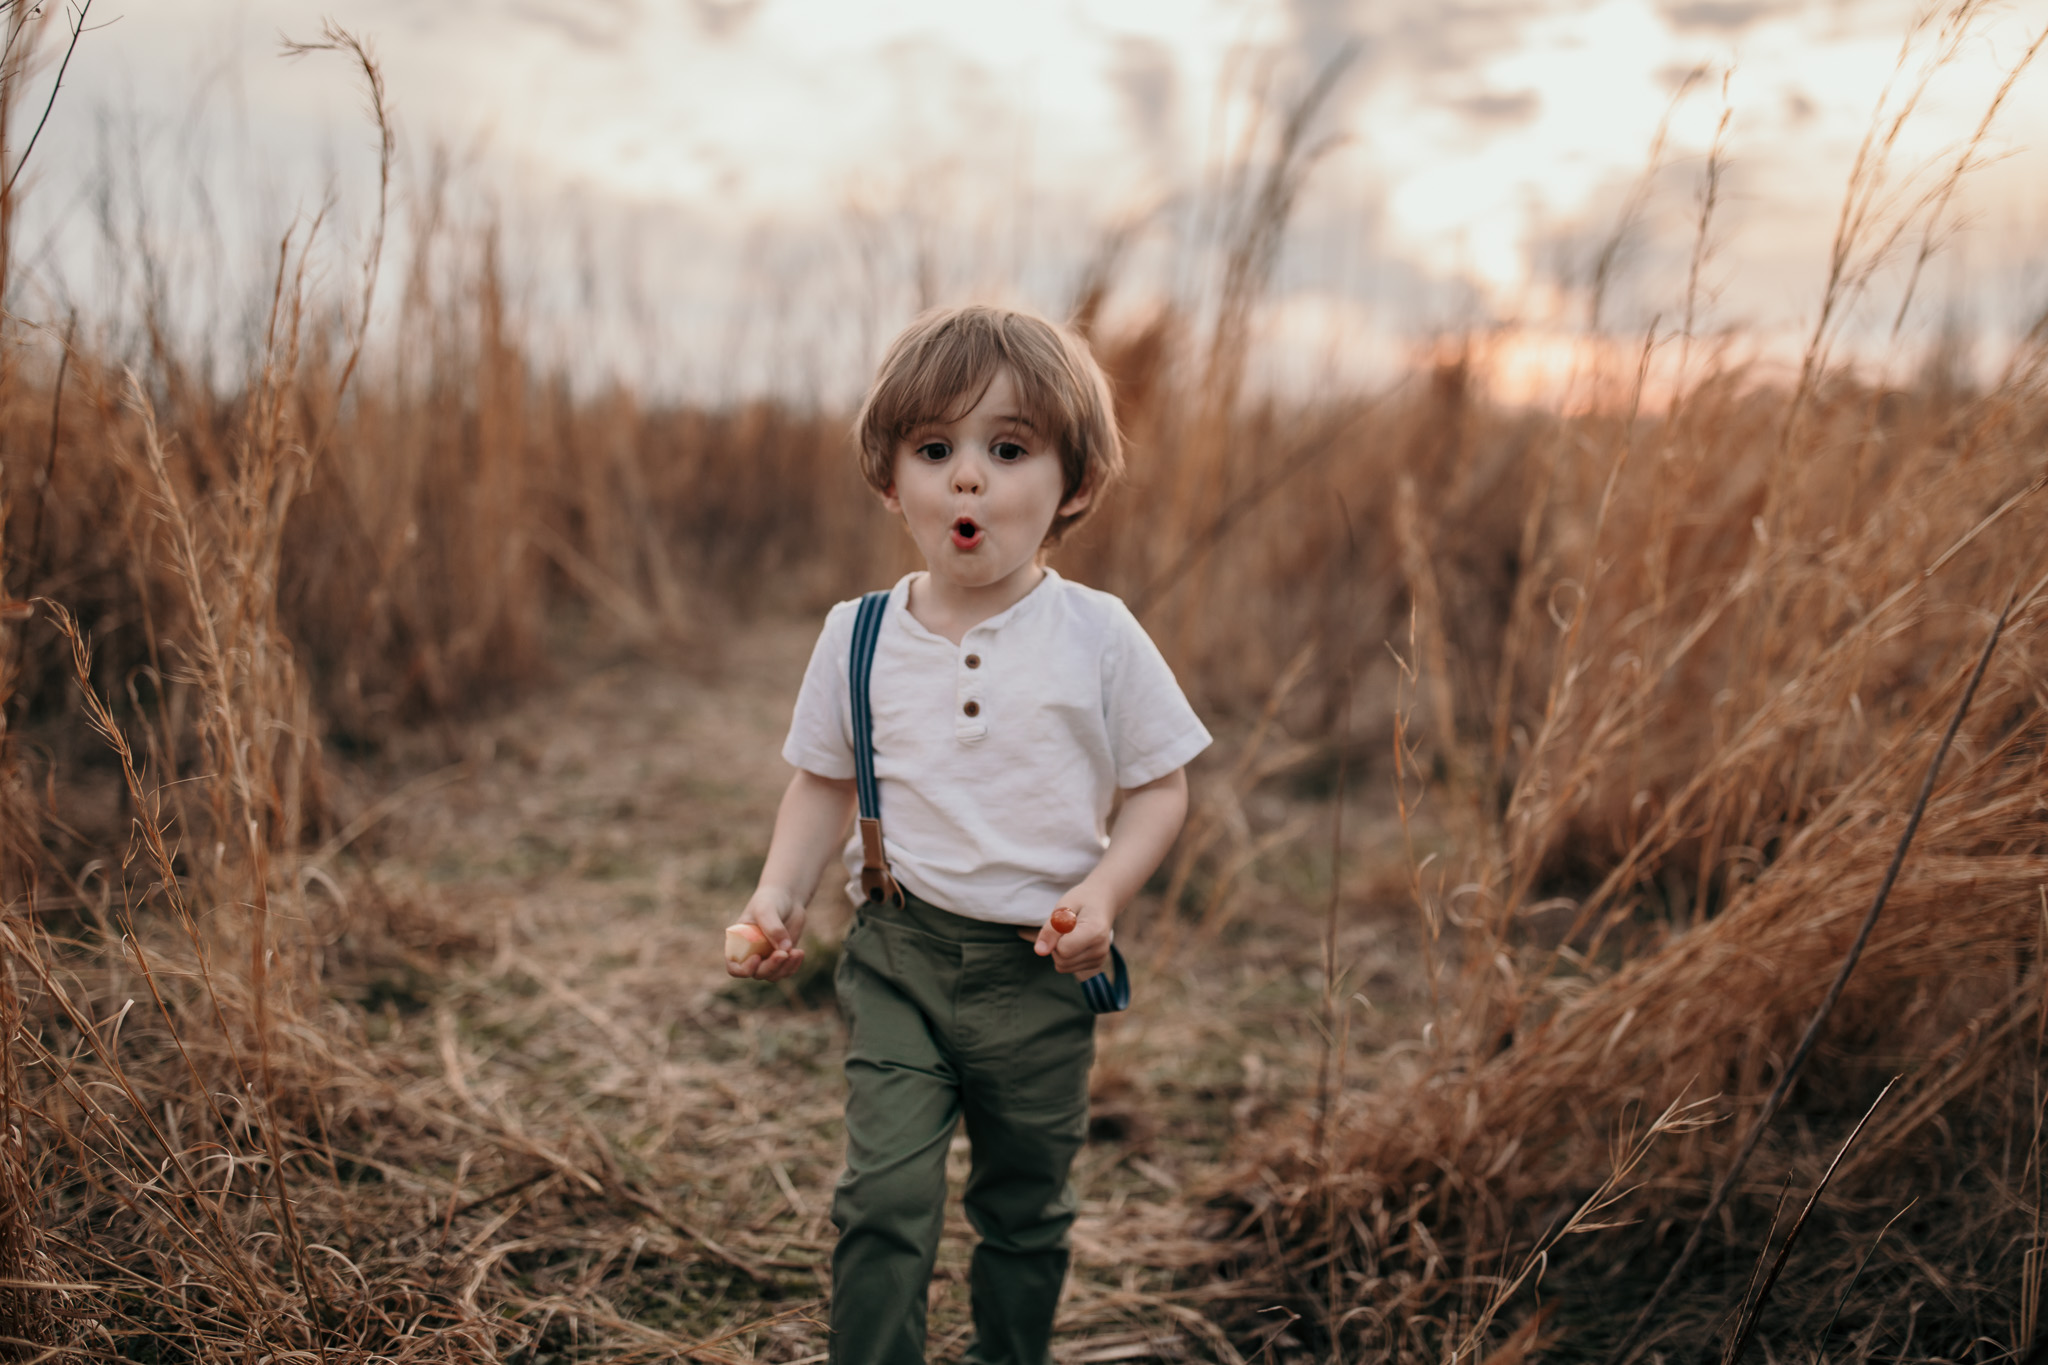 Little Boy Walking in Field